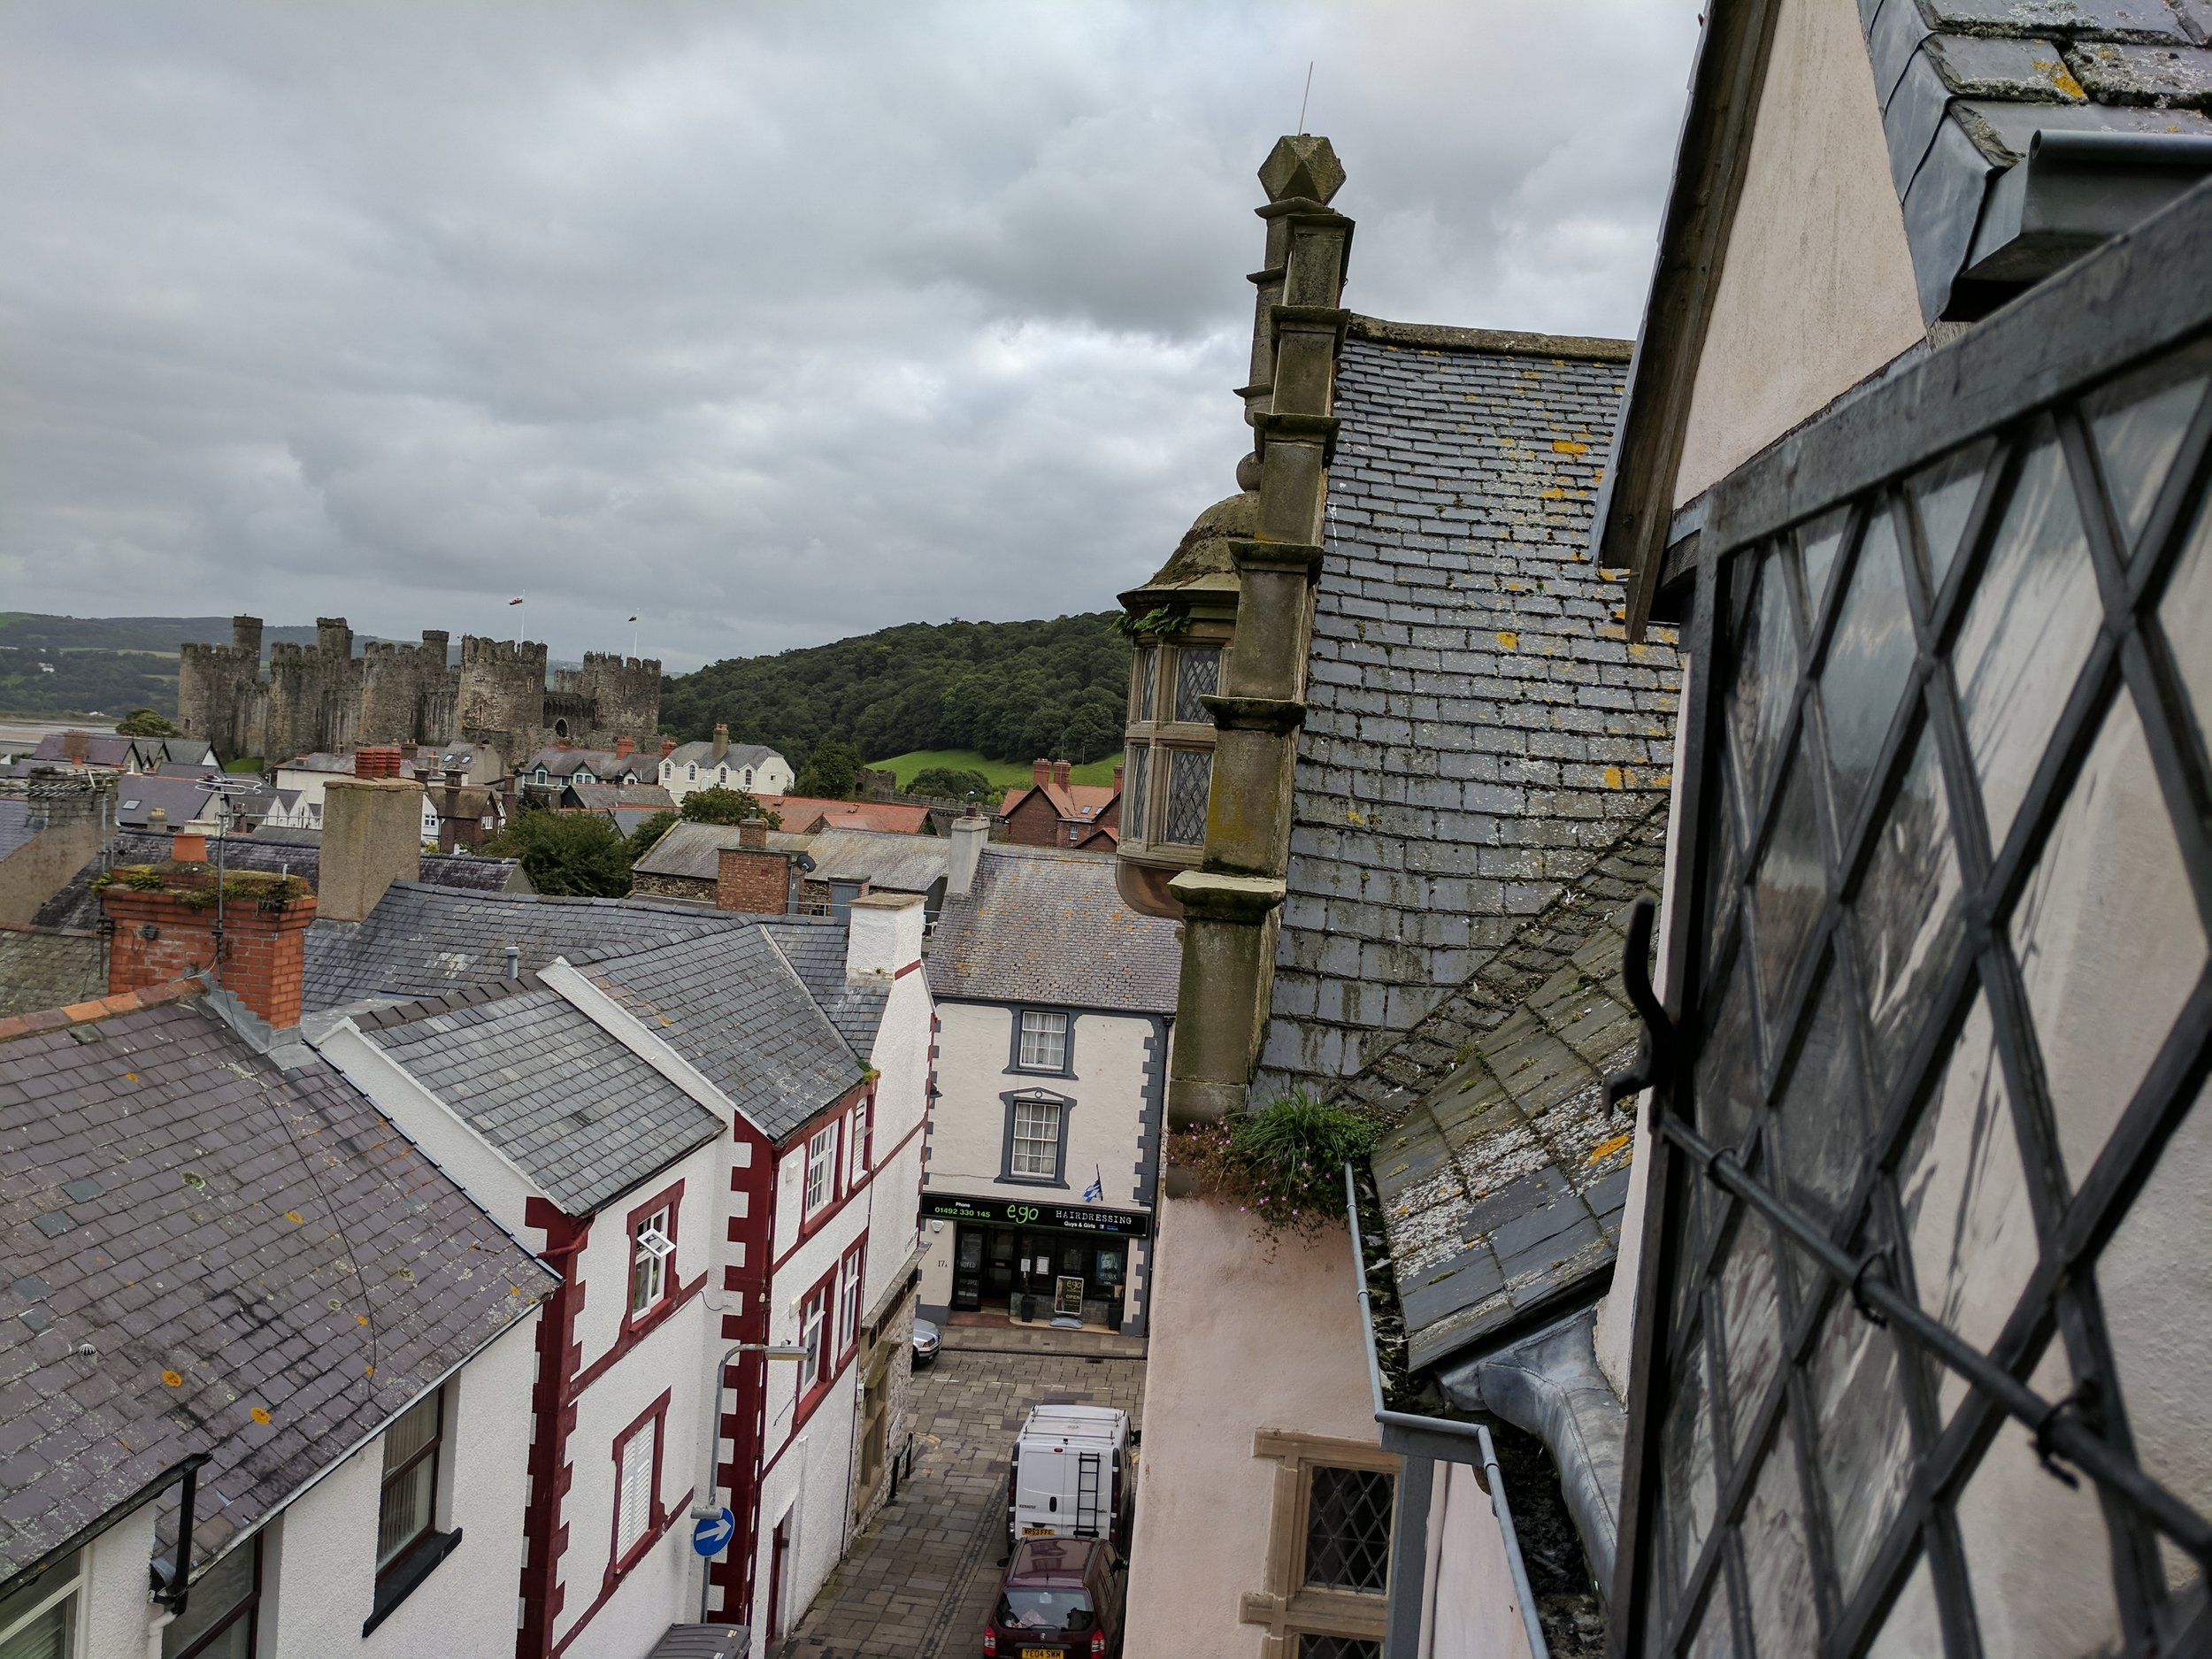 View of the Conwy Castle from town